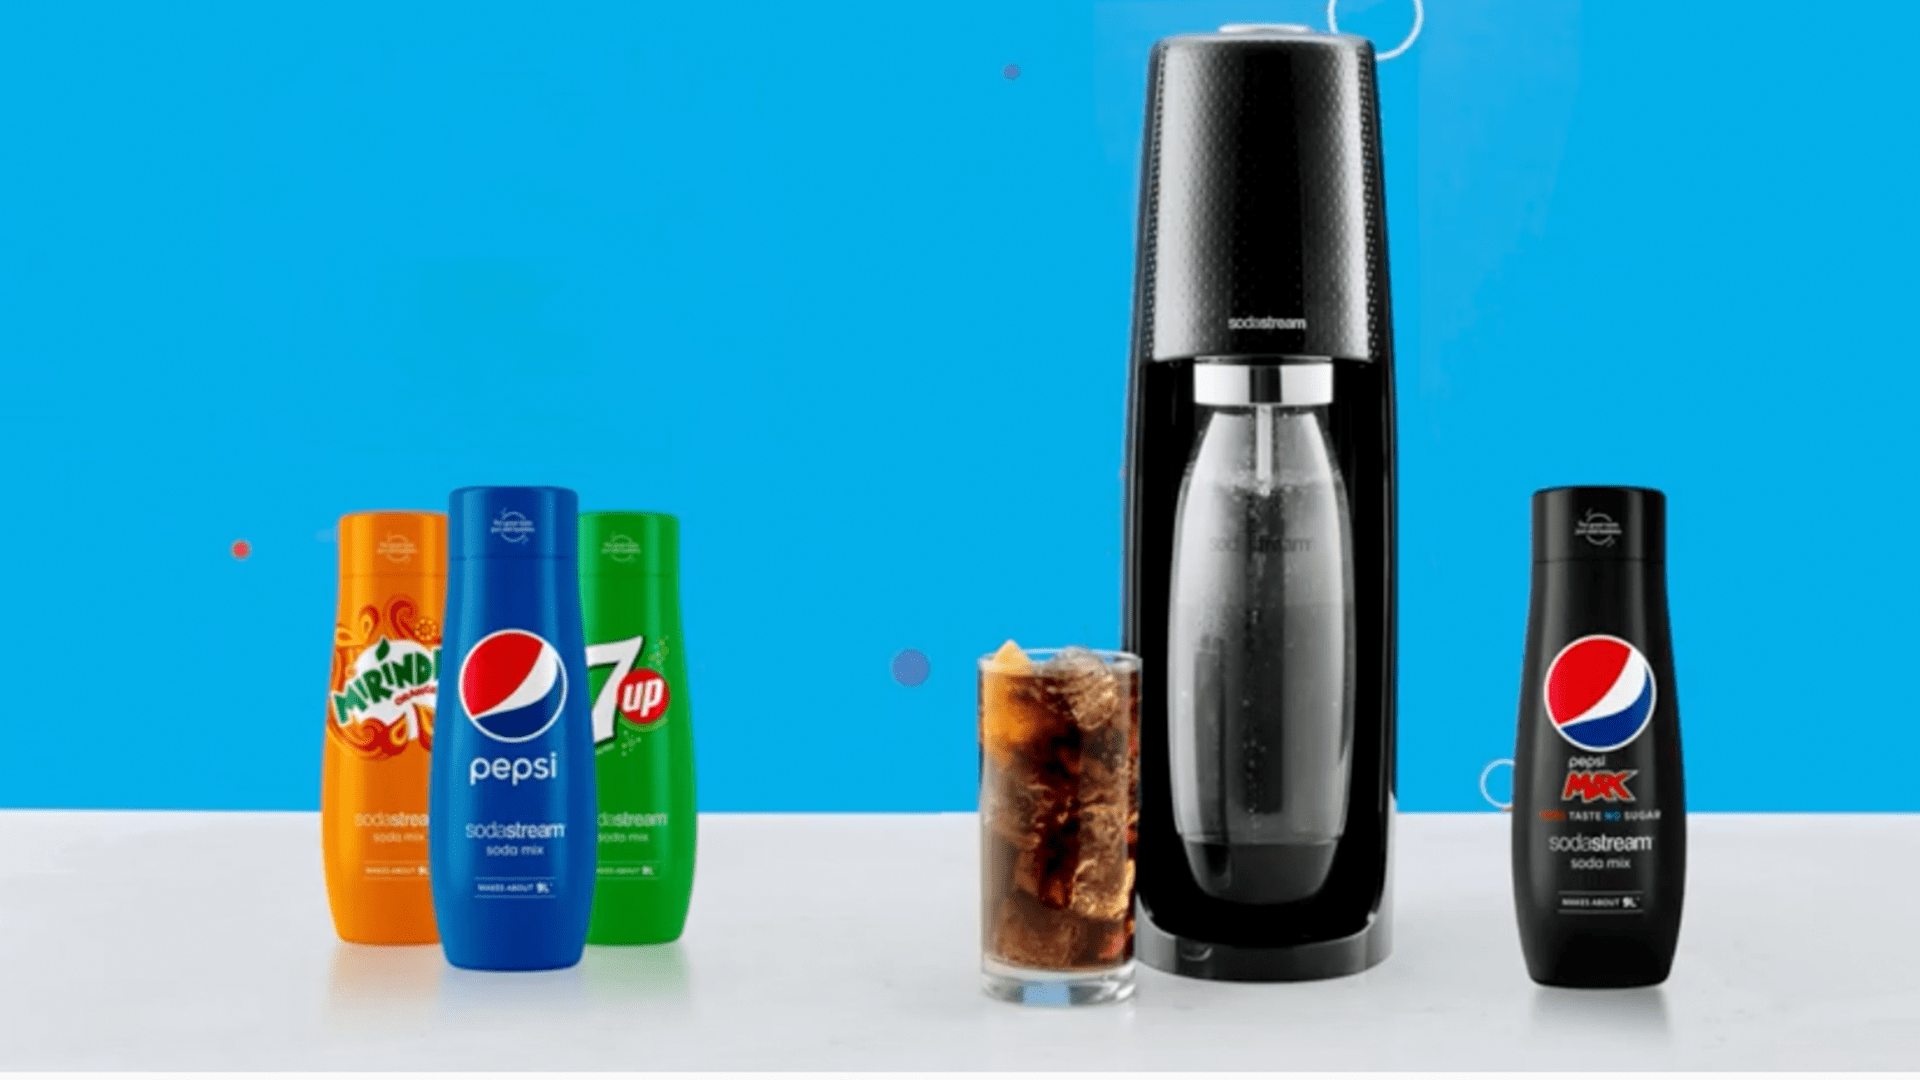 You Can Now Make Real Pepsi At Home With Your Sodastream photo